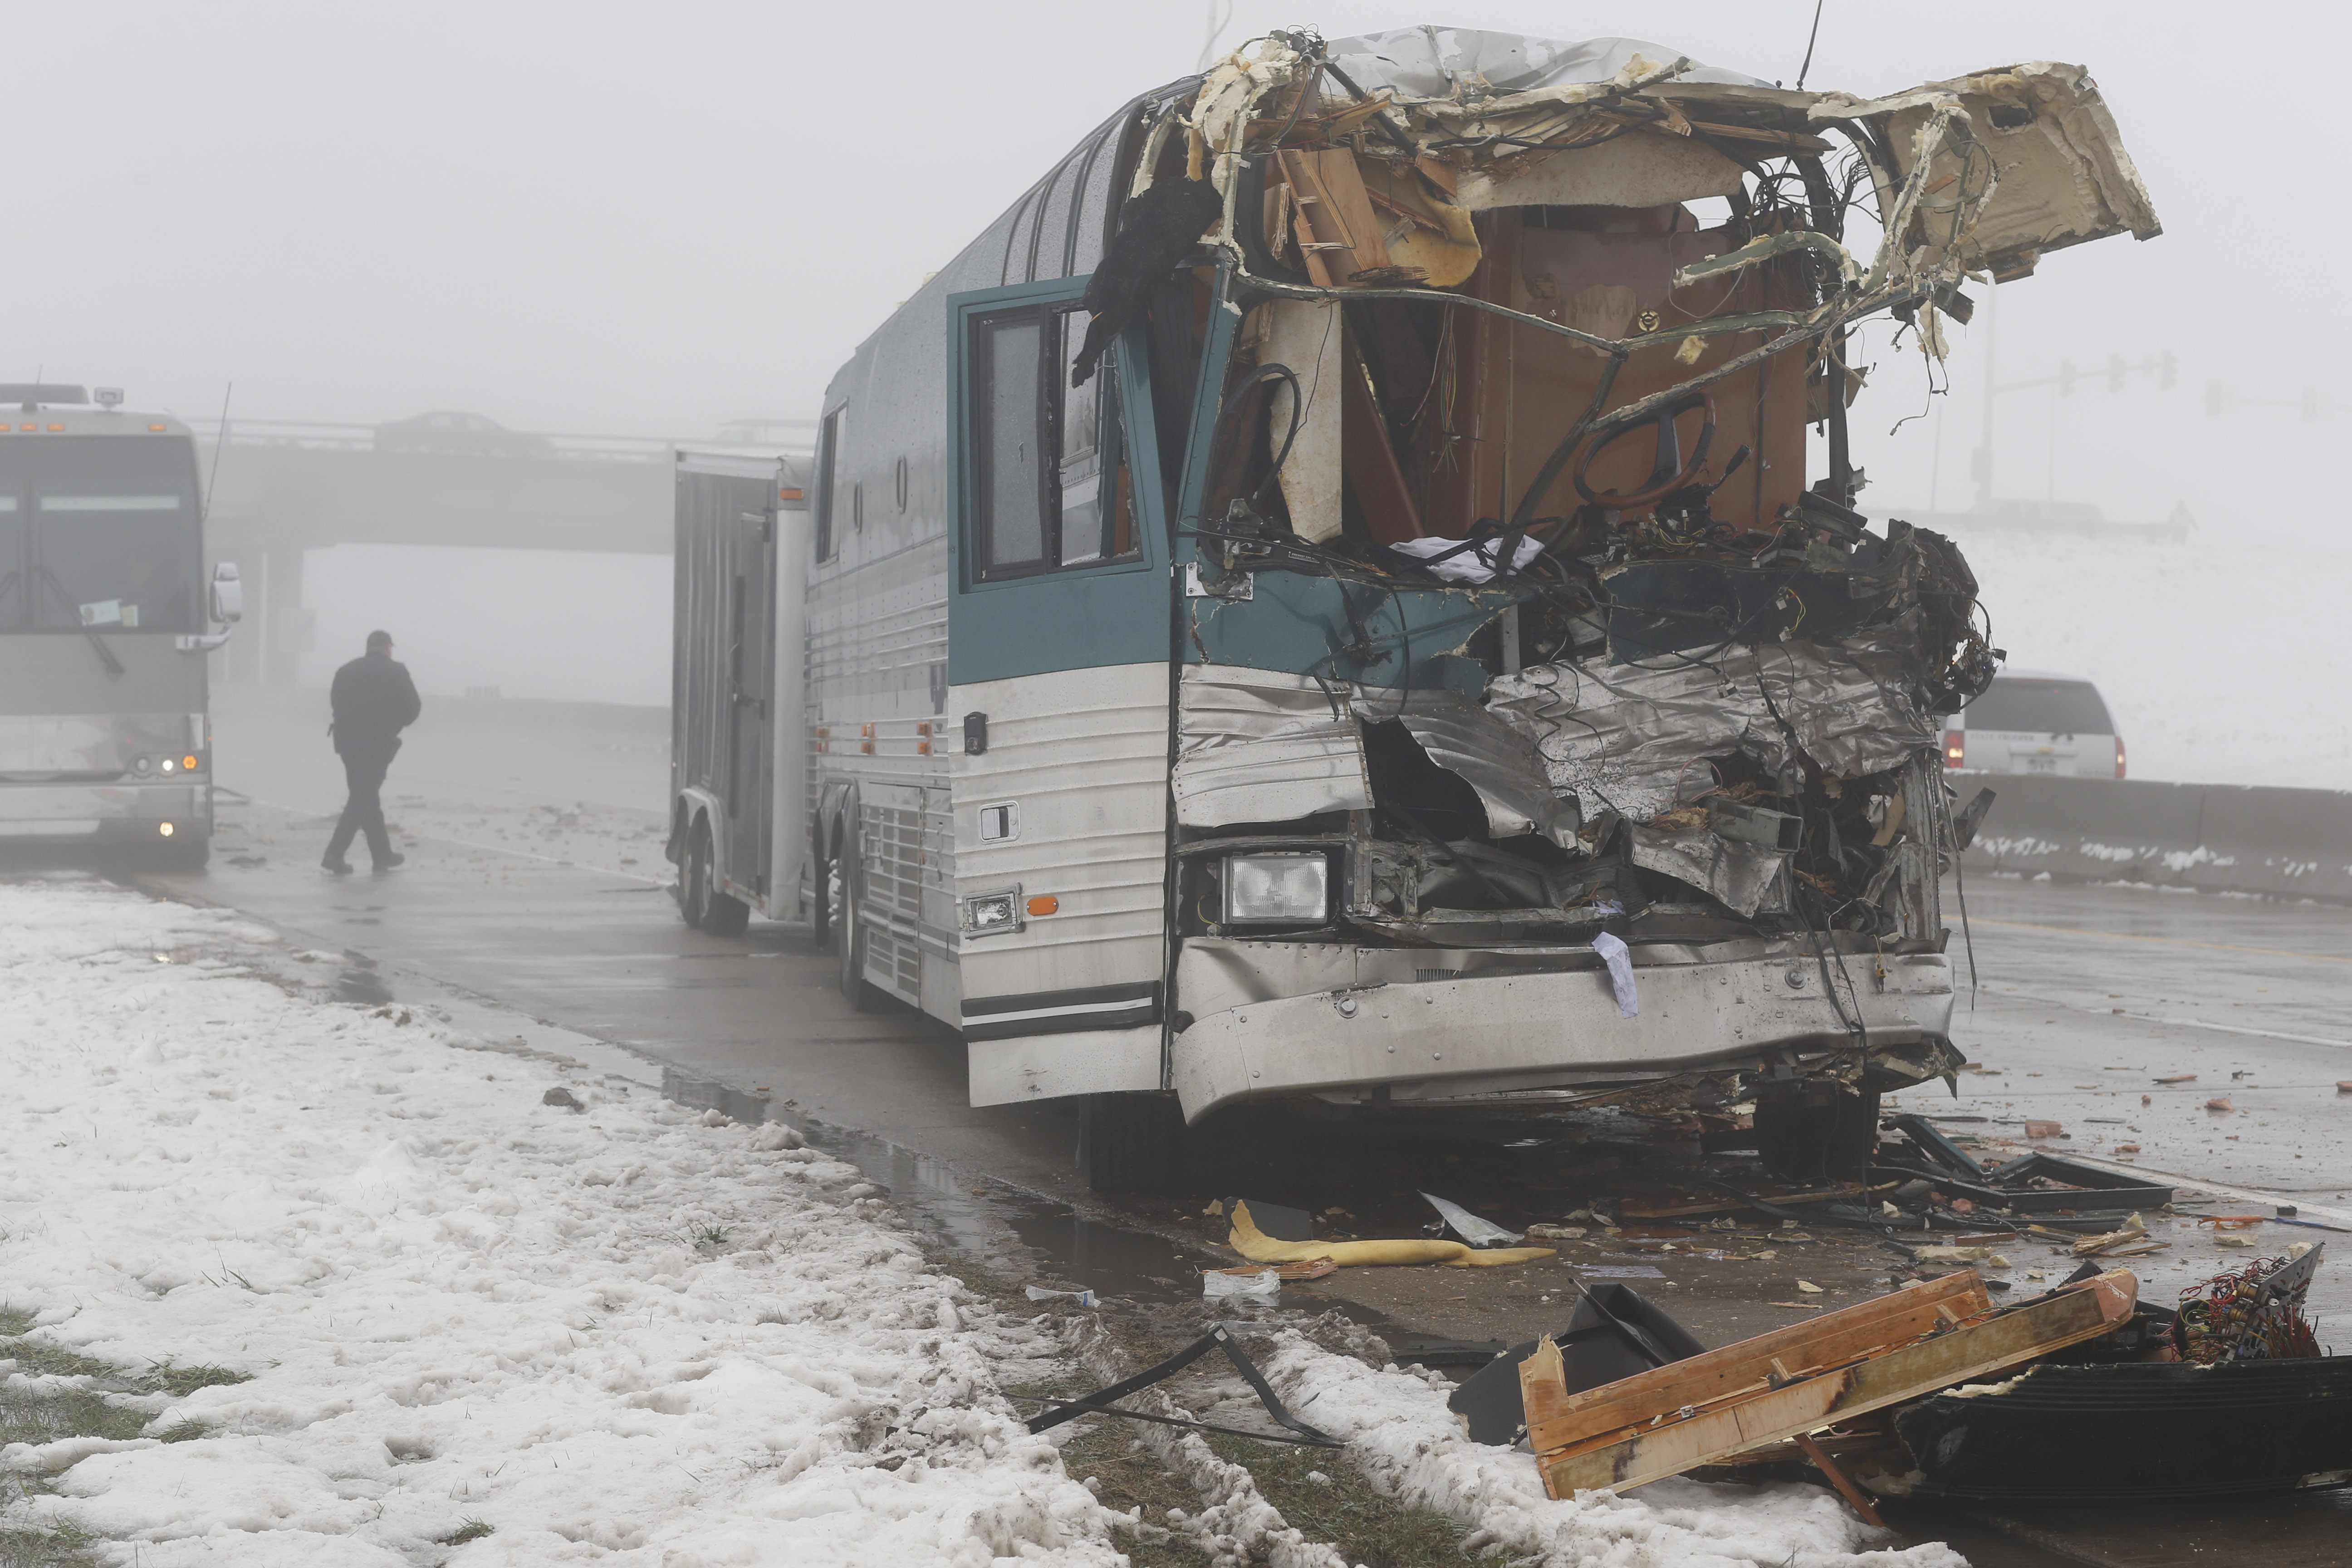 tour bus involved in an accident with a tractor trailer